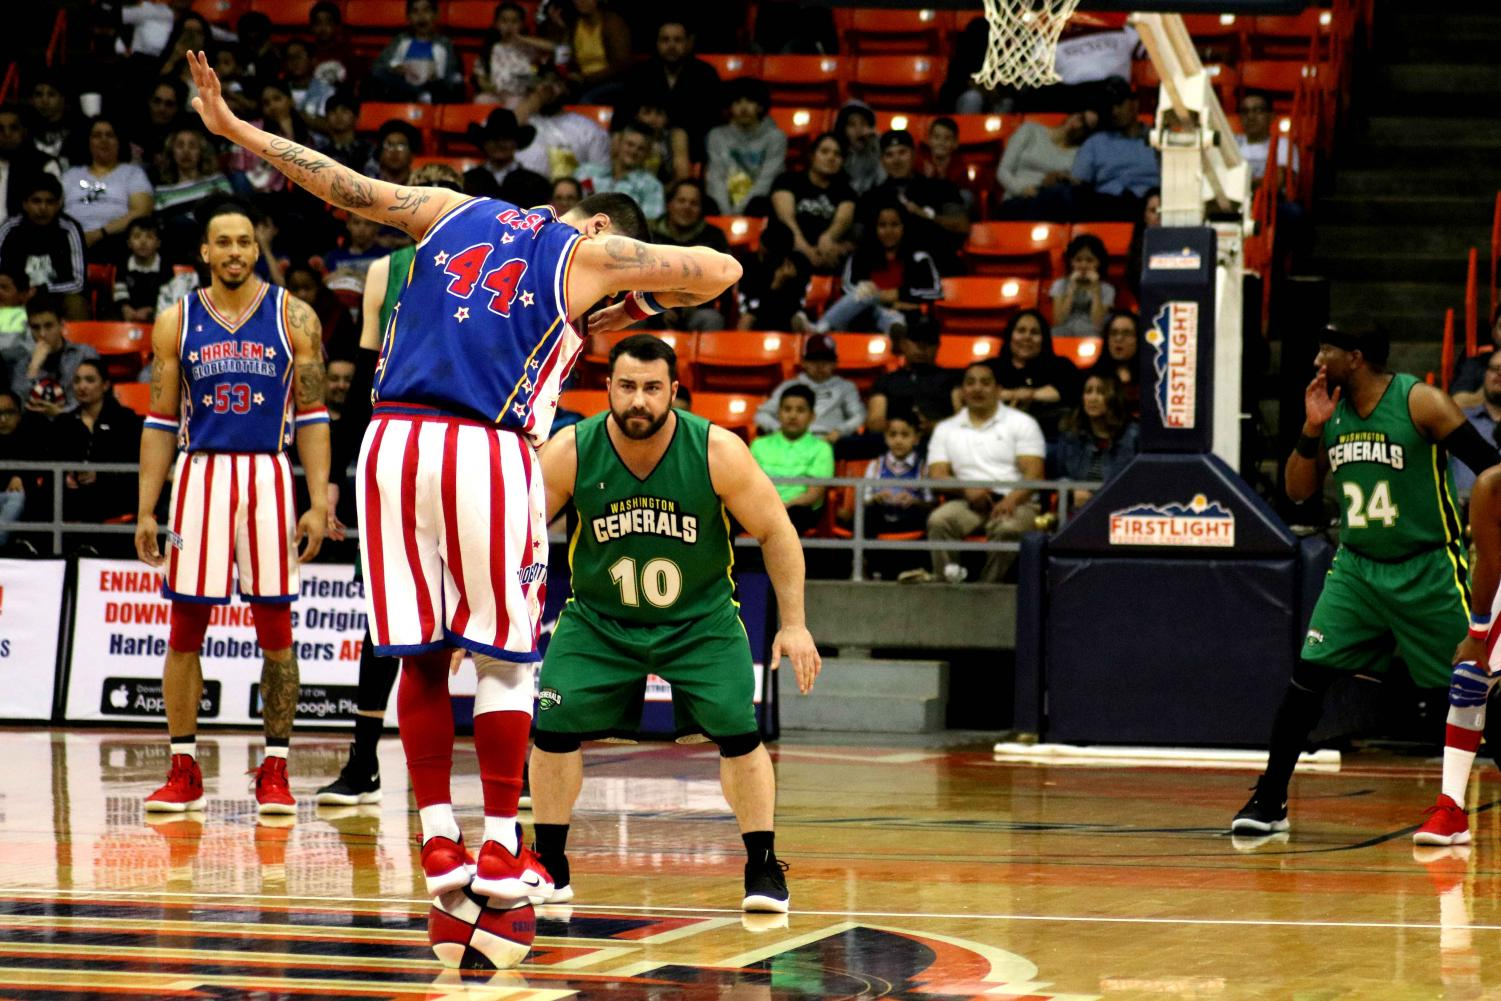 The+Harlem+Globetrotters+play+against+the+Washington+Generals+at+the+Don+Haskins+Center+in+El+Paso%2C+TX%2C+Sunday%2C+March+10%2C+2019.